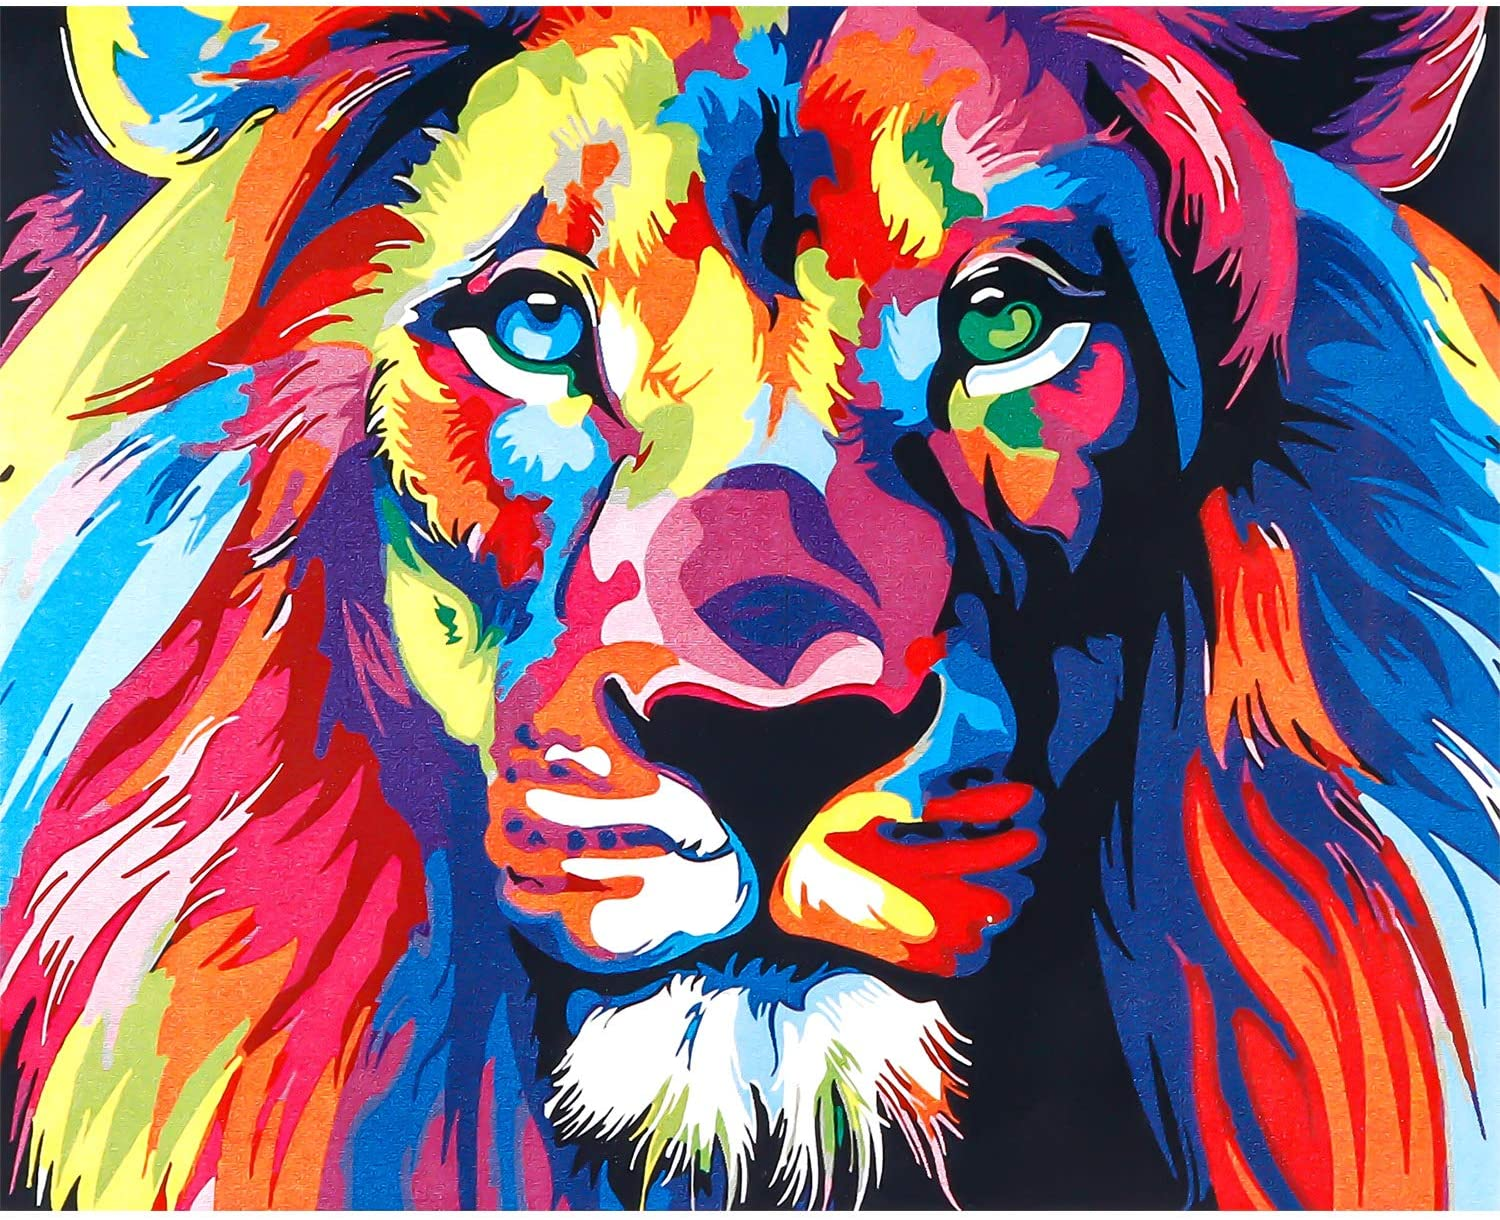 DIY Oil Painting,Tinabless Paintworks Paint by Number for Kids and Adults - Colorful Lion 16x20 Inch